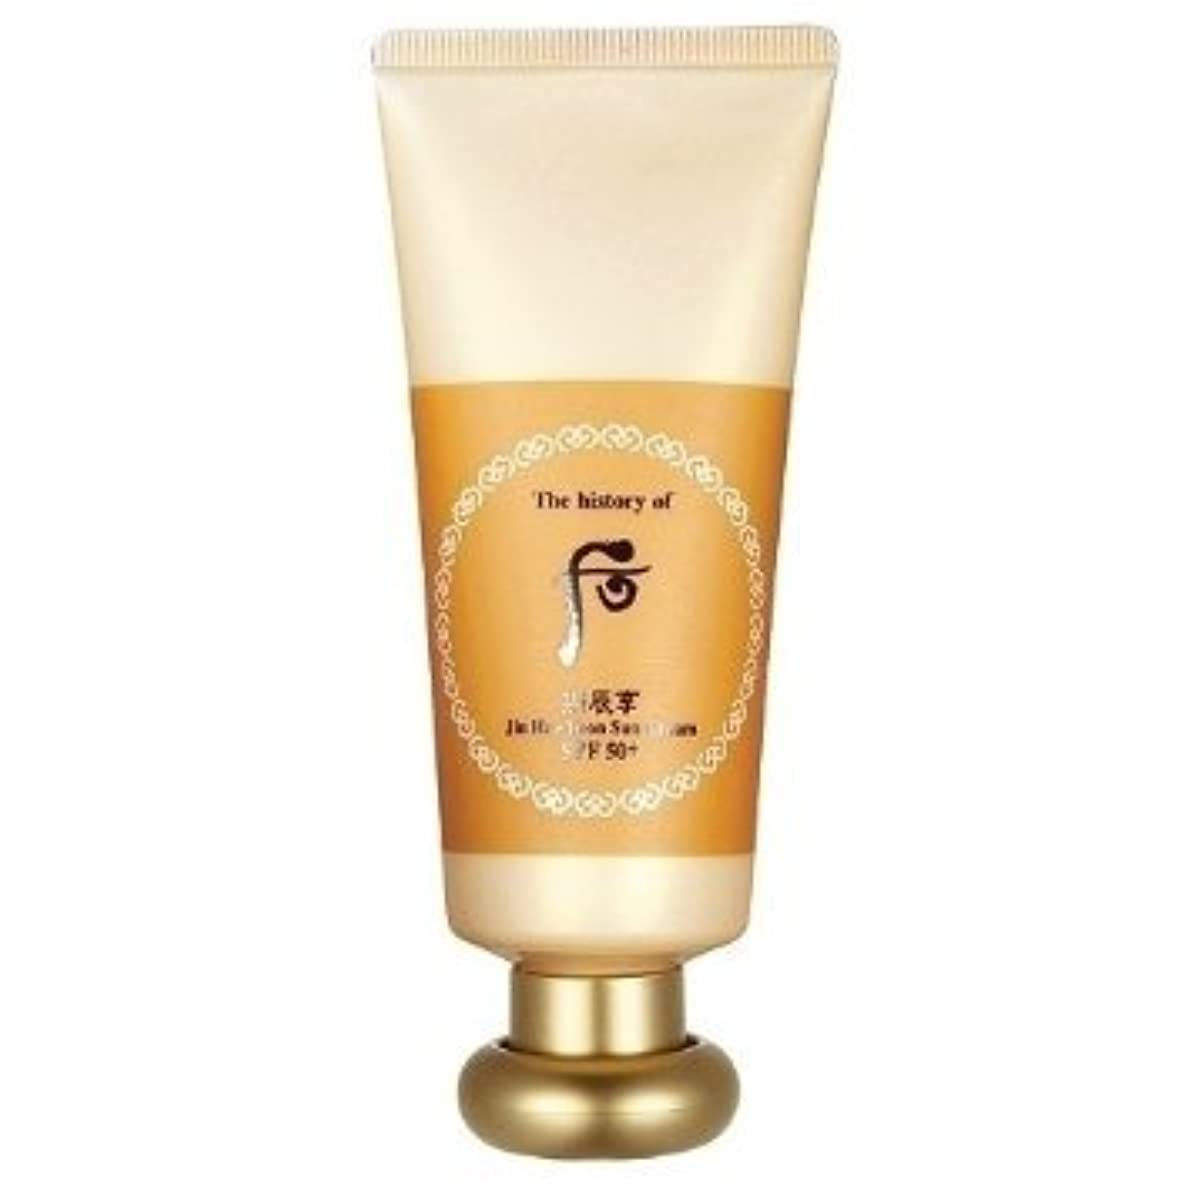 効能あるあごひげジャンプするThe History of Whoo Gongjinhyang Jin Hae Yoon Sun Cream SPF50+ PA+++(60ml)[並行輸入品]